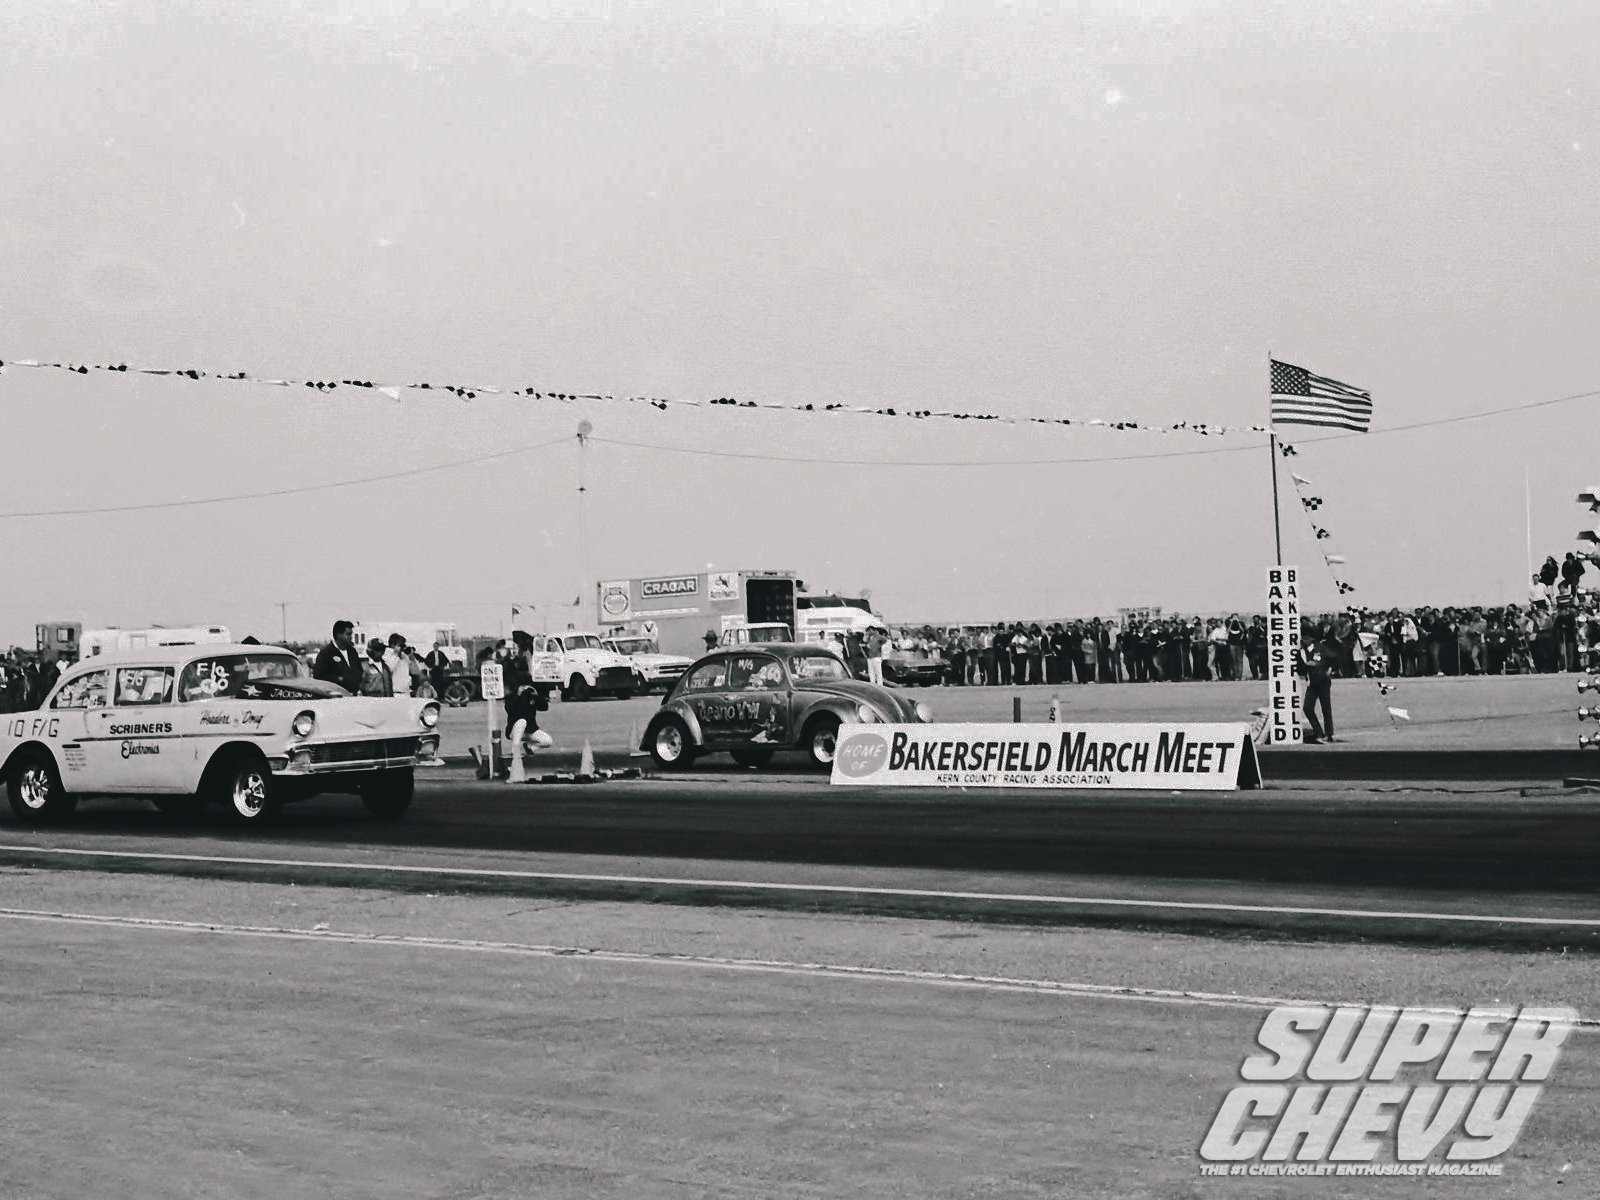 Sucp_1207_005_super_chevy_drag_racing_greats_part_3_